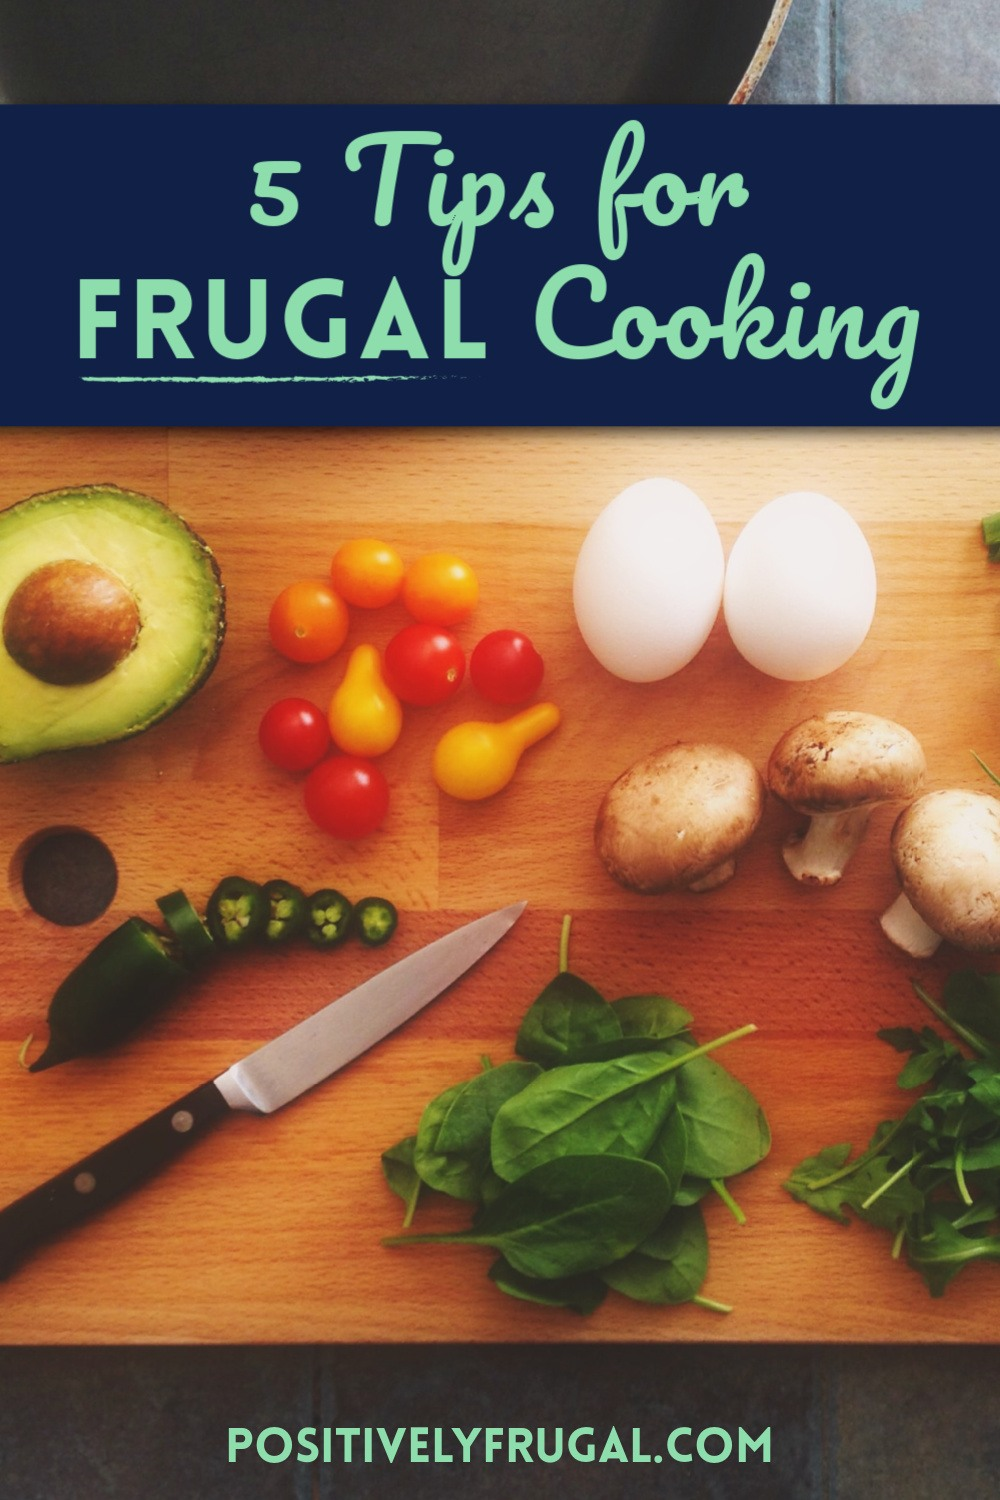 Best Tips for Frugal Cooking by PositivelyFrugal.com